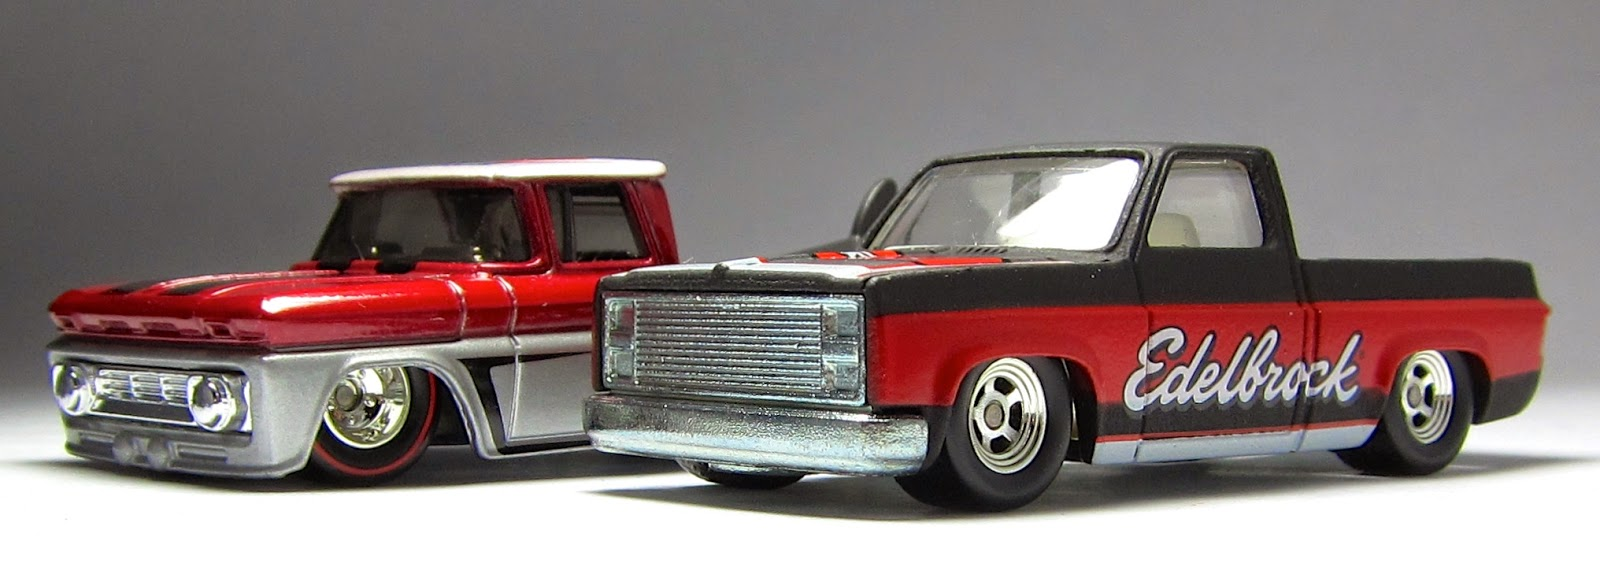 bb7d38f1c7 Best Motorcycle 2014: Cool is Cool is Cool: Hot Wheels Slick Rides '83  Silverado & Custom '62 Chevy Pickups.